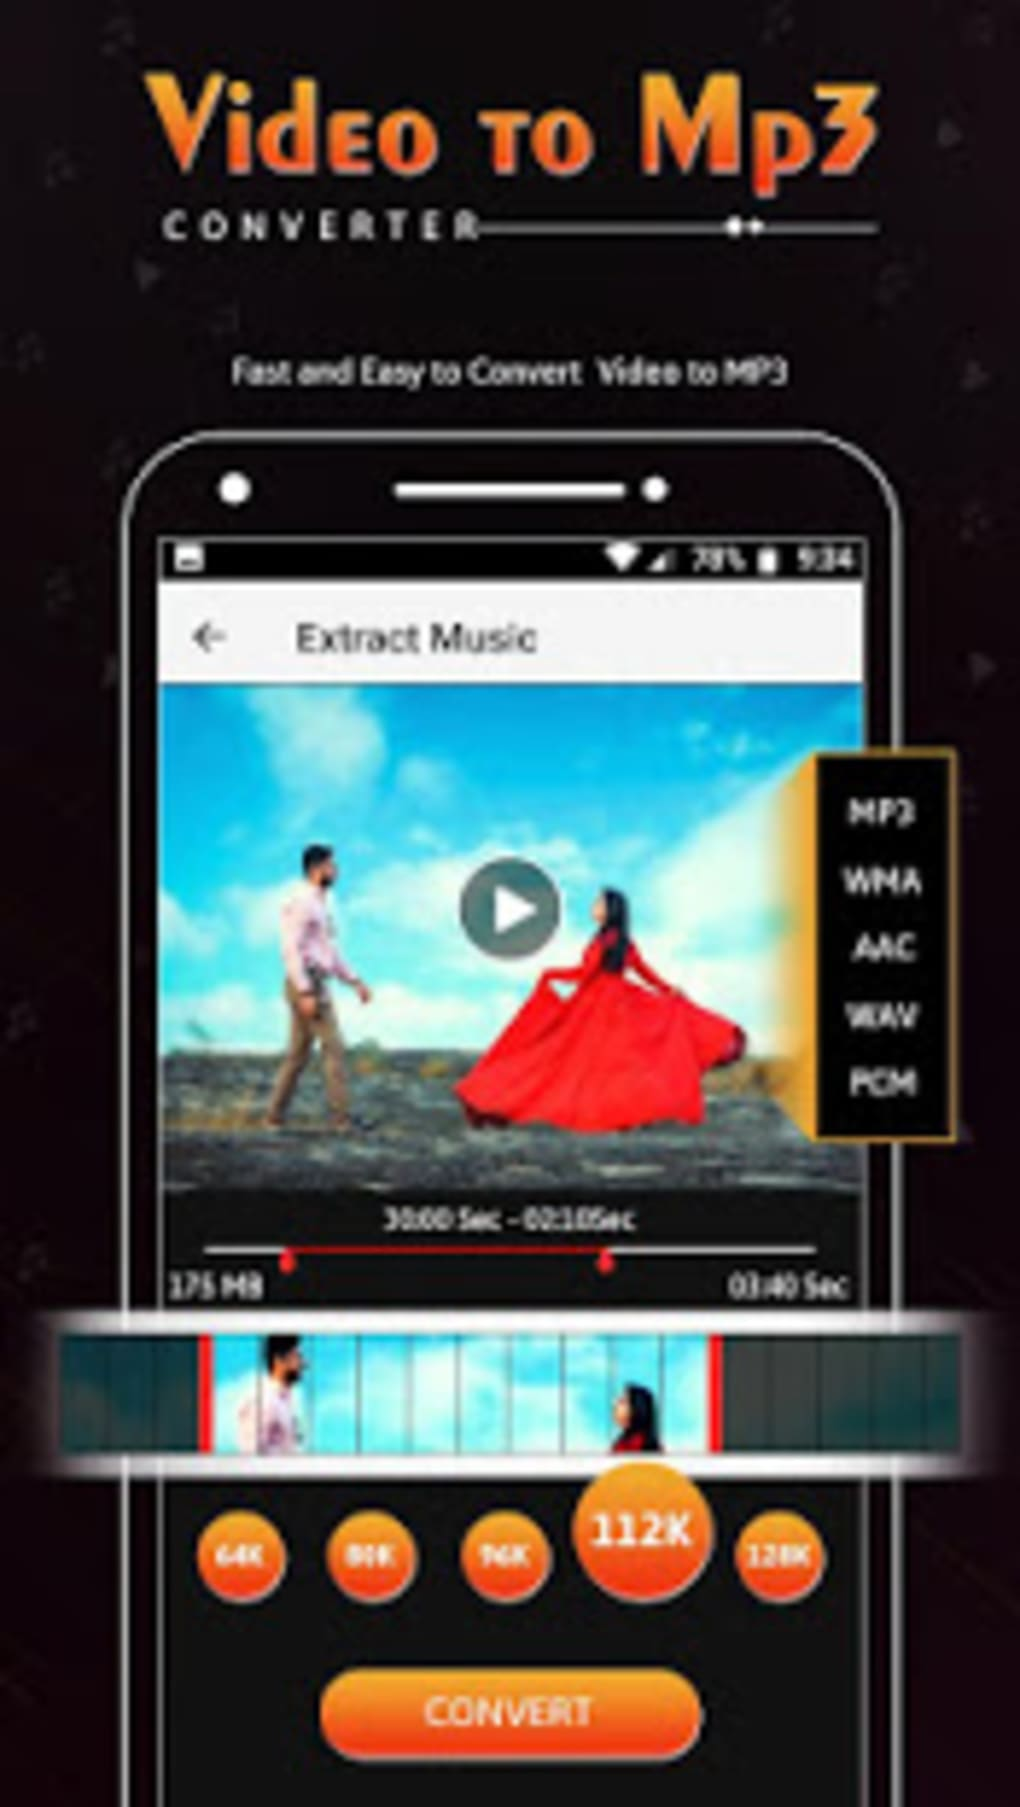 Video to Mp3 Converter Ringtone Maker Add Music for Android - Download